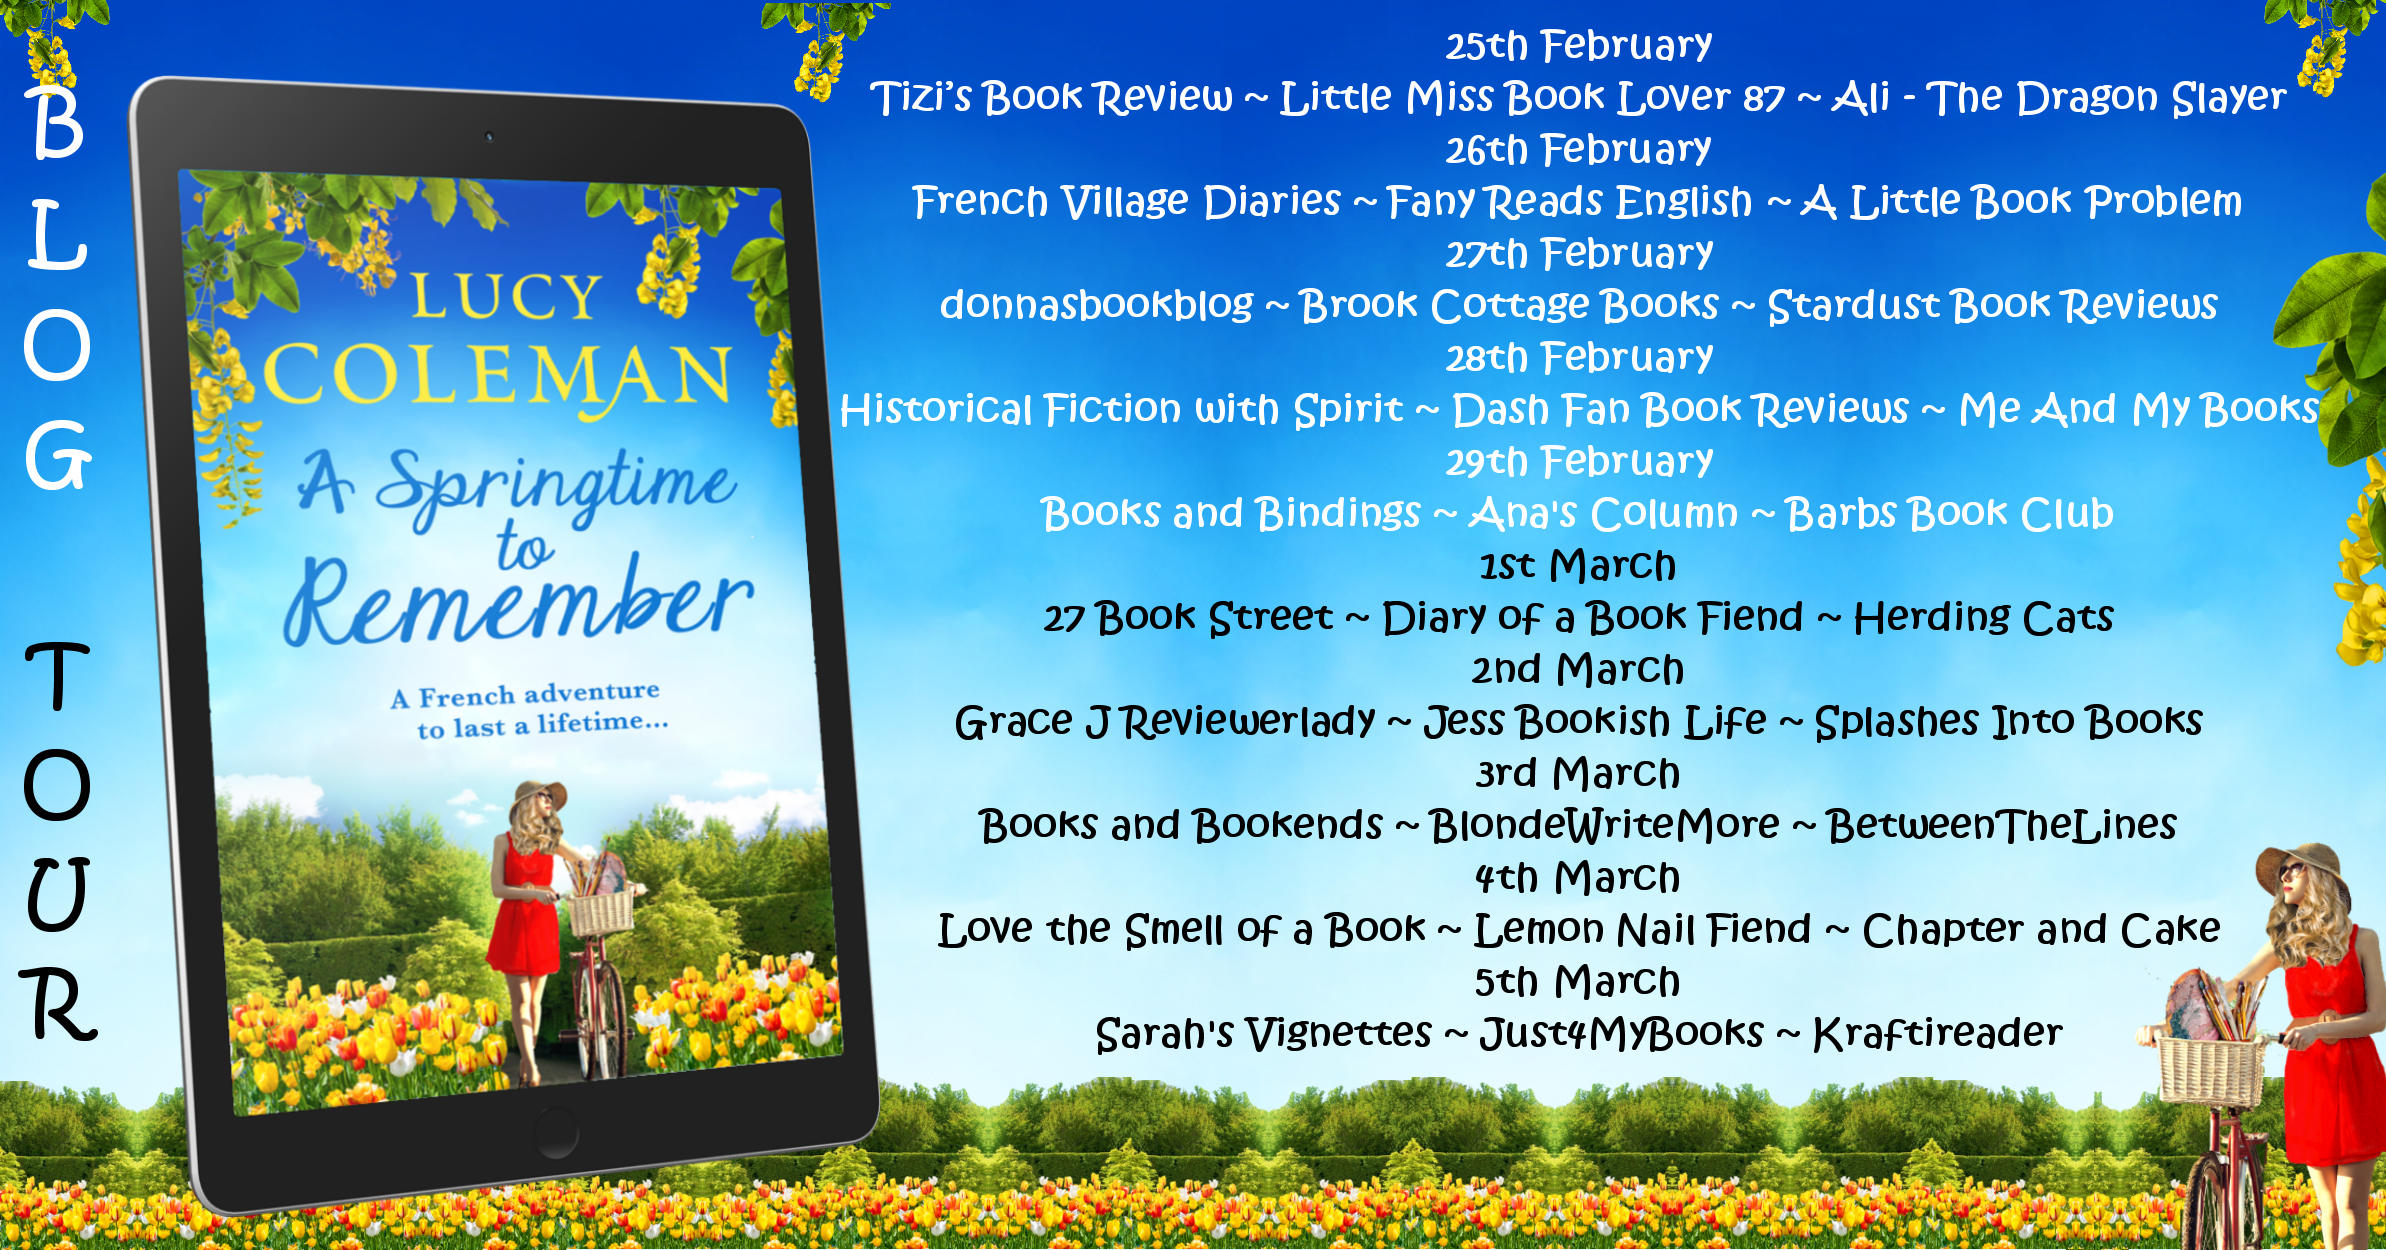 A Springtime to Remember Full Tour Banner